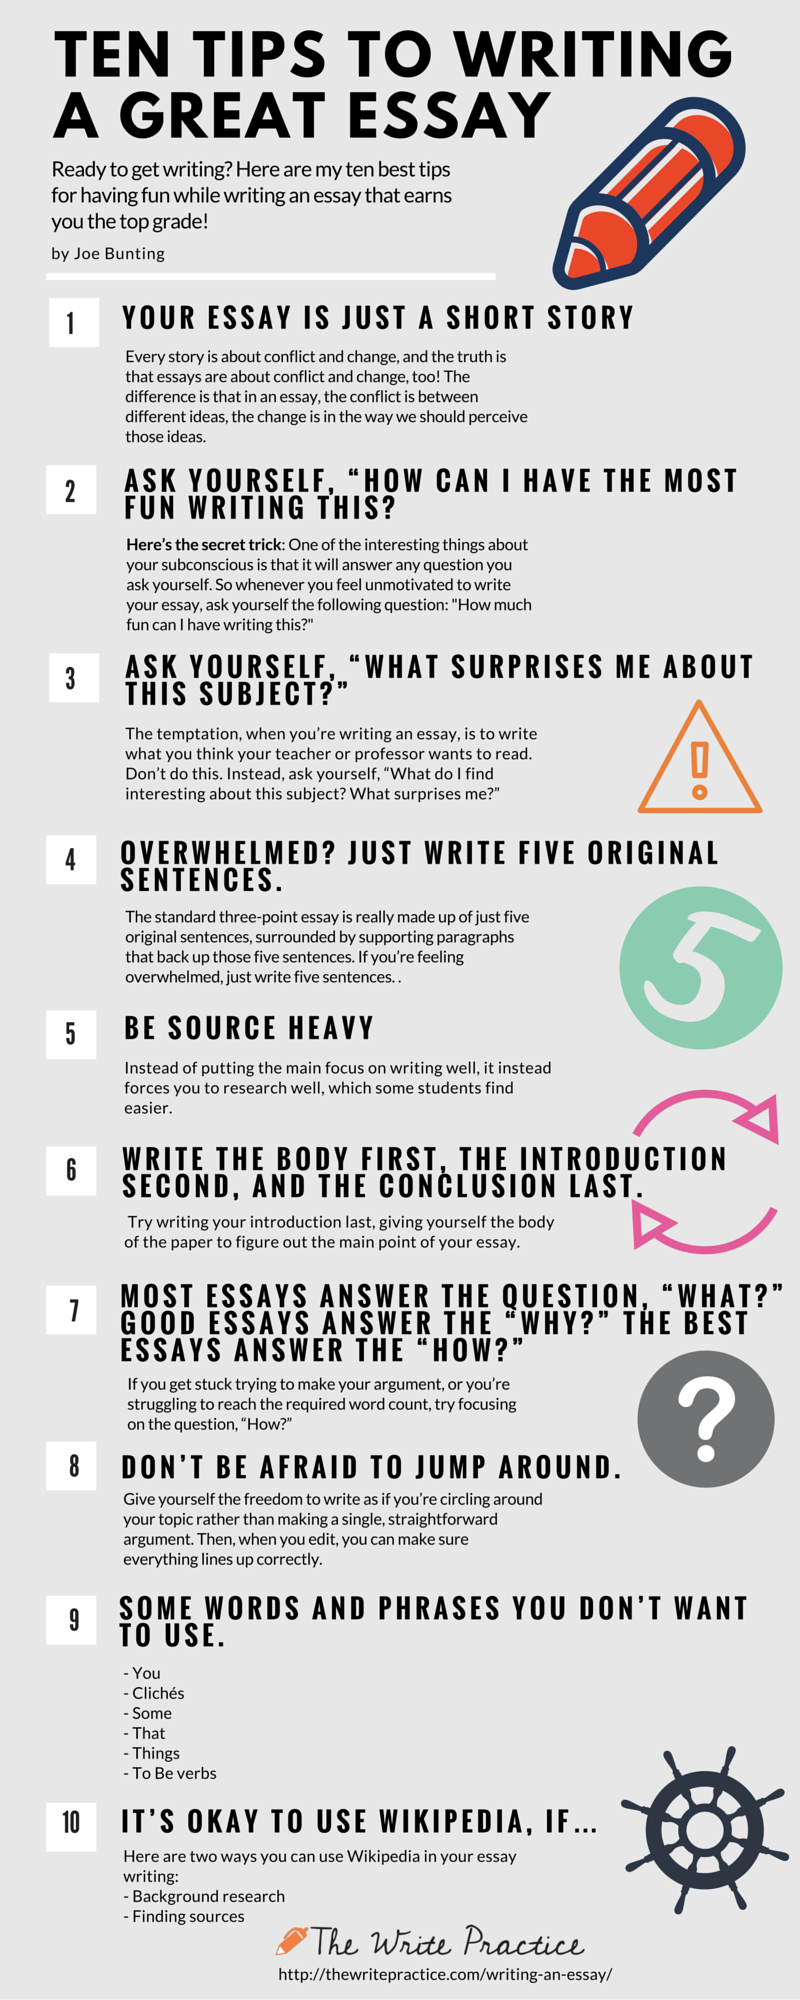 http://cdn.thewritepractice.com/wp-content/uploads/2015/10/10-Tips-for-Writing-an-Essay1.png